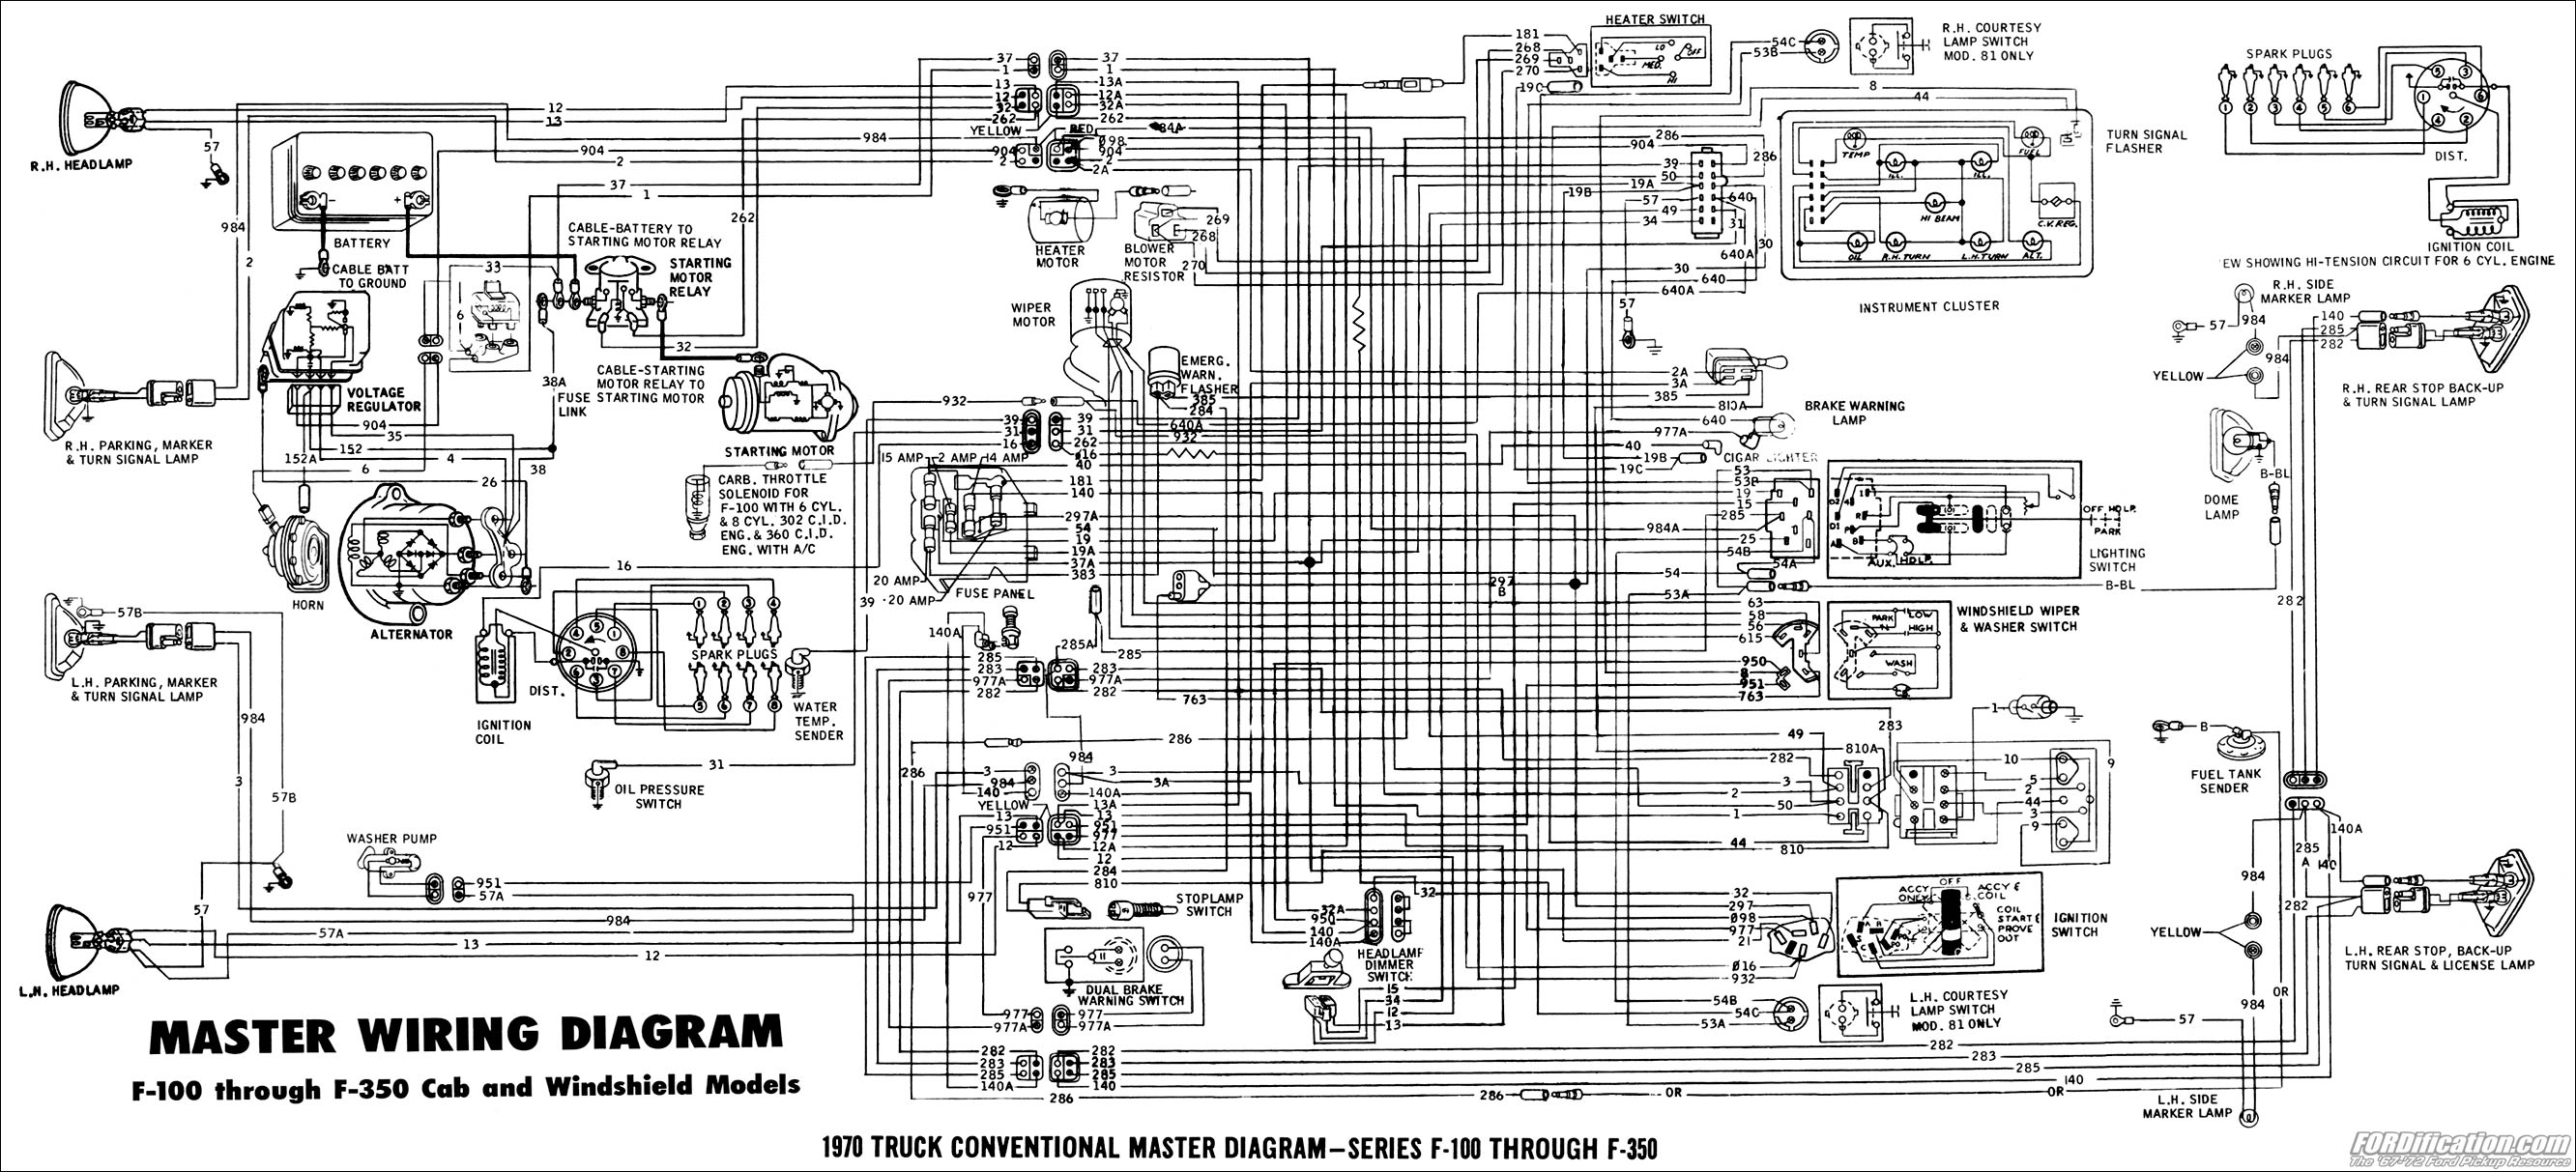 Fantastic Viper 5701 Wiring Diagram Pictures - Everything You Need ...